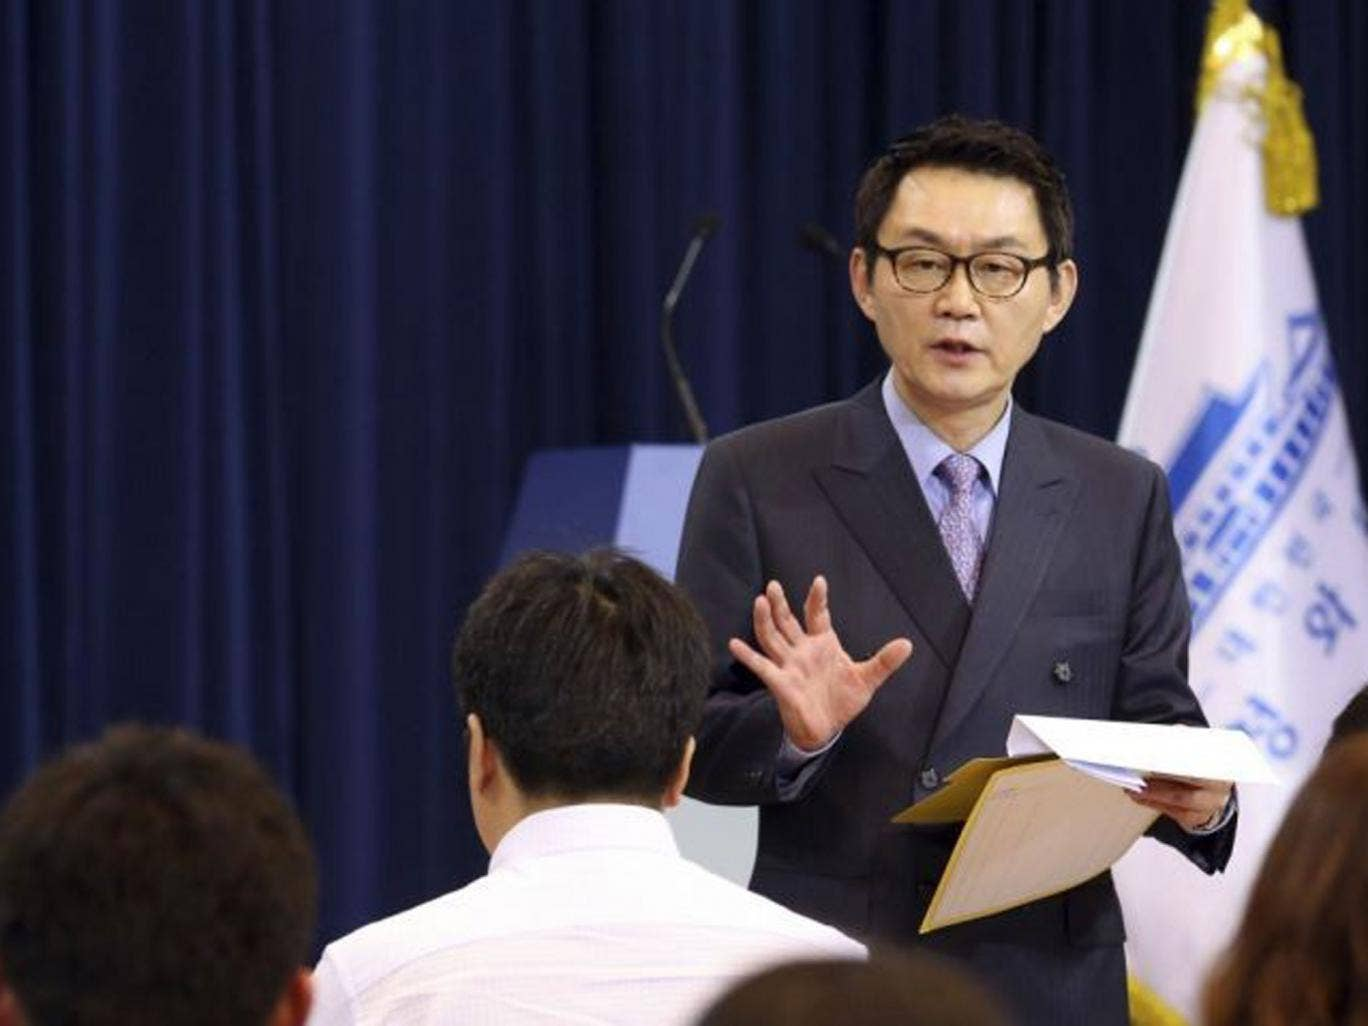 Yoon Chang-jung, spokesman of South Korean President Park Geun-hye, speaks in front of reporters at the presidential Blue House in Seoul